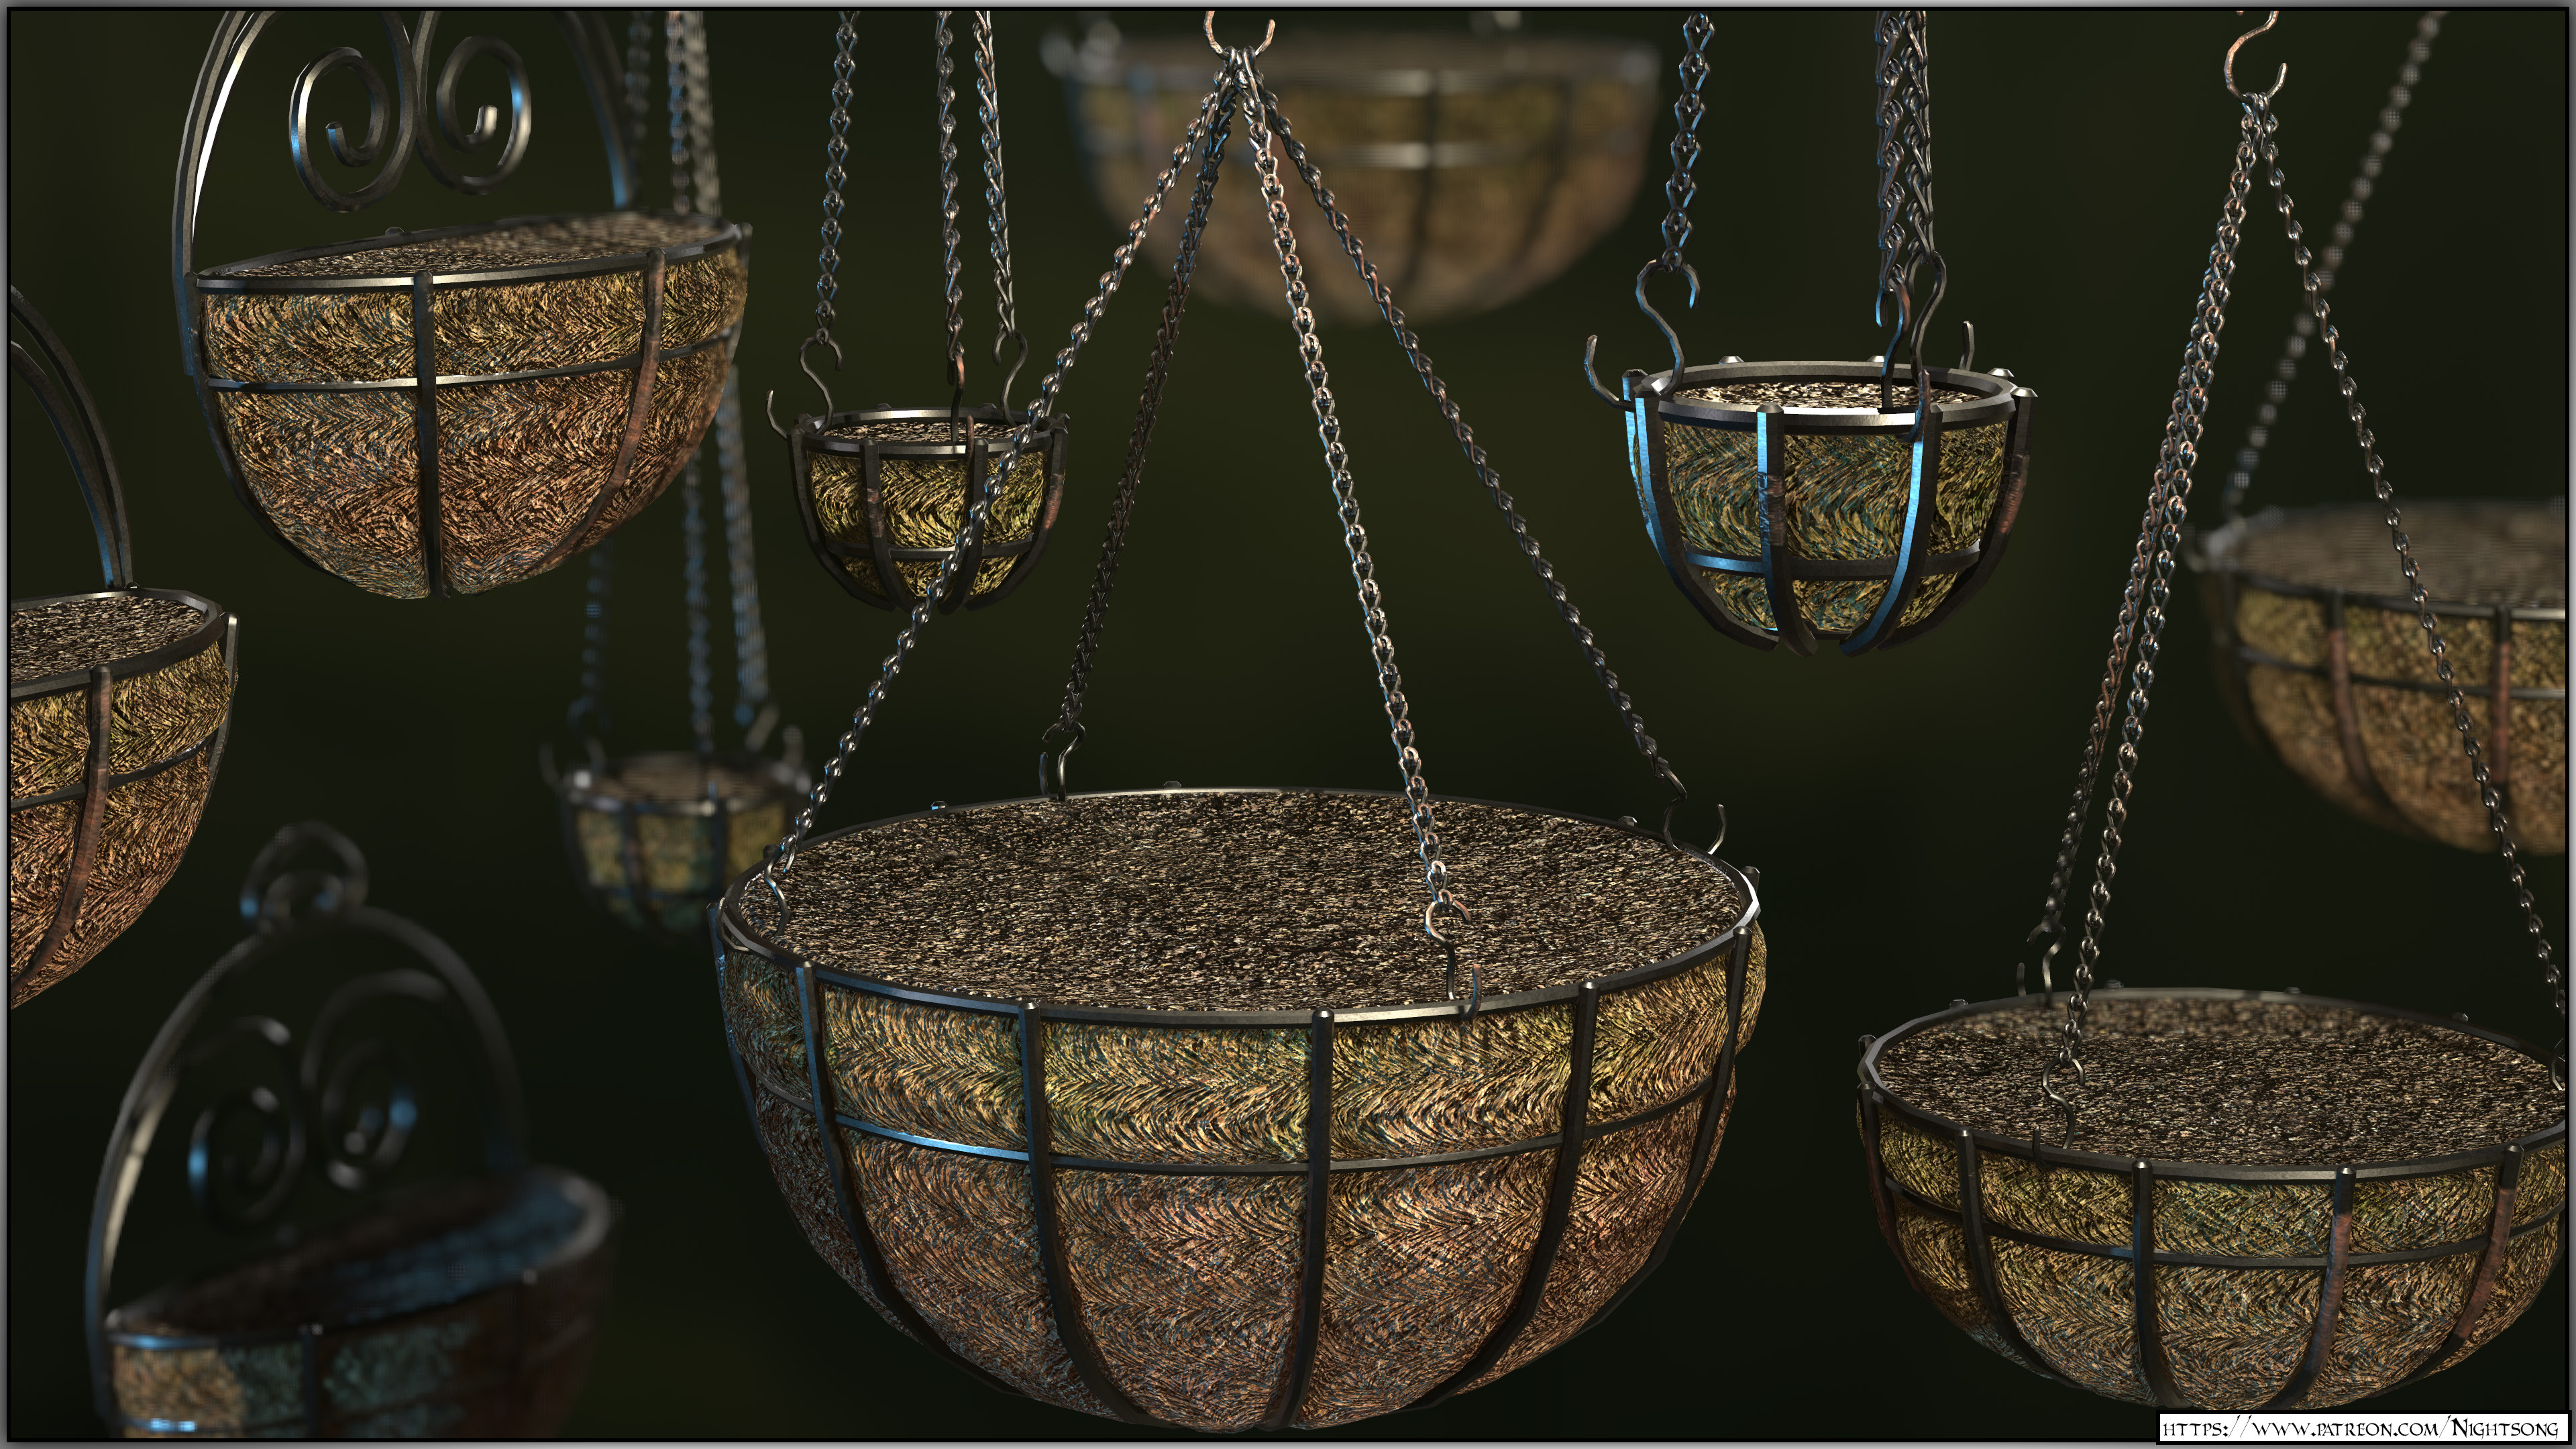 A render in Marmoset Toolbag of each of the baskets.